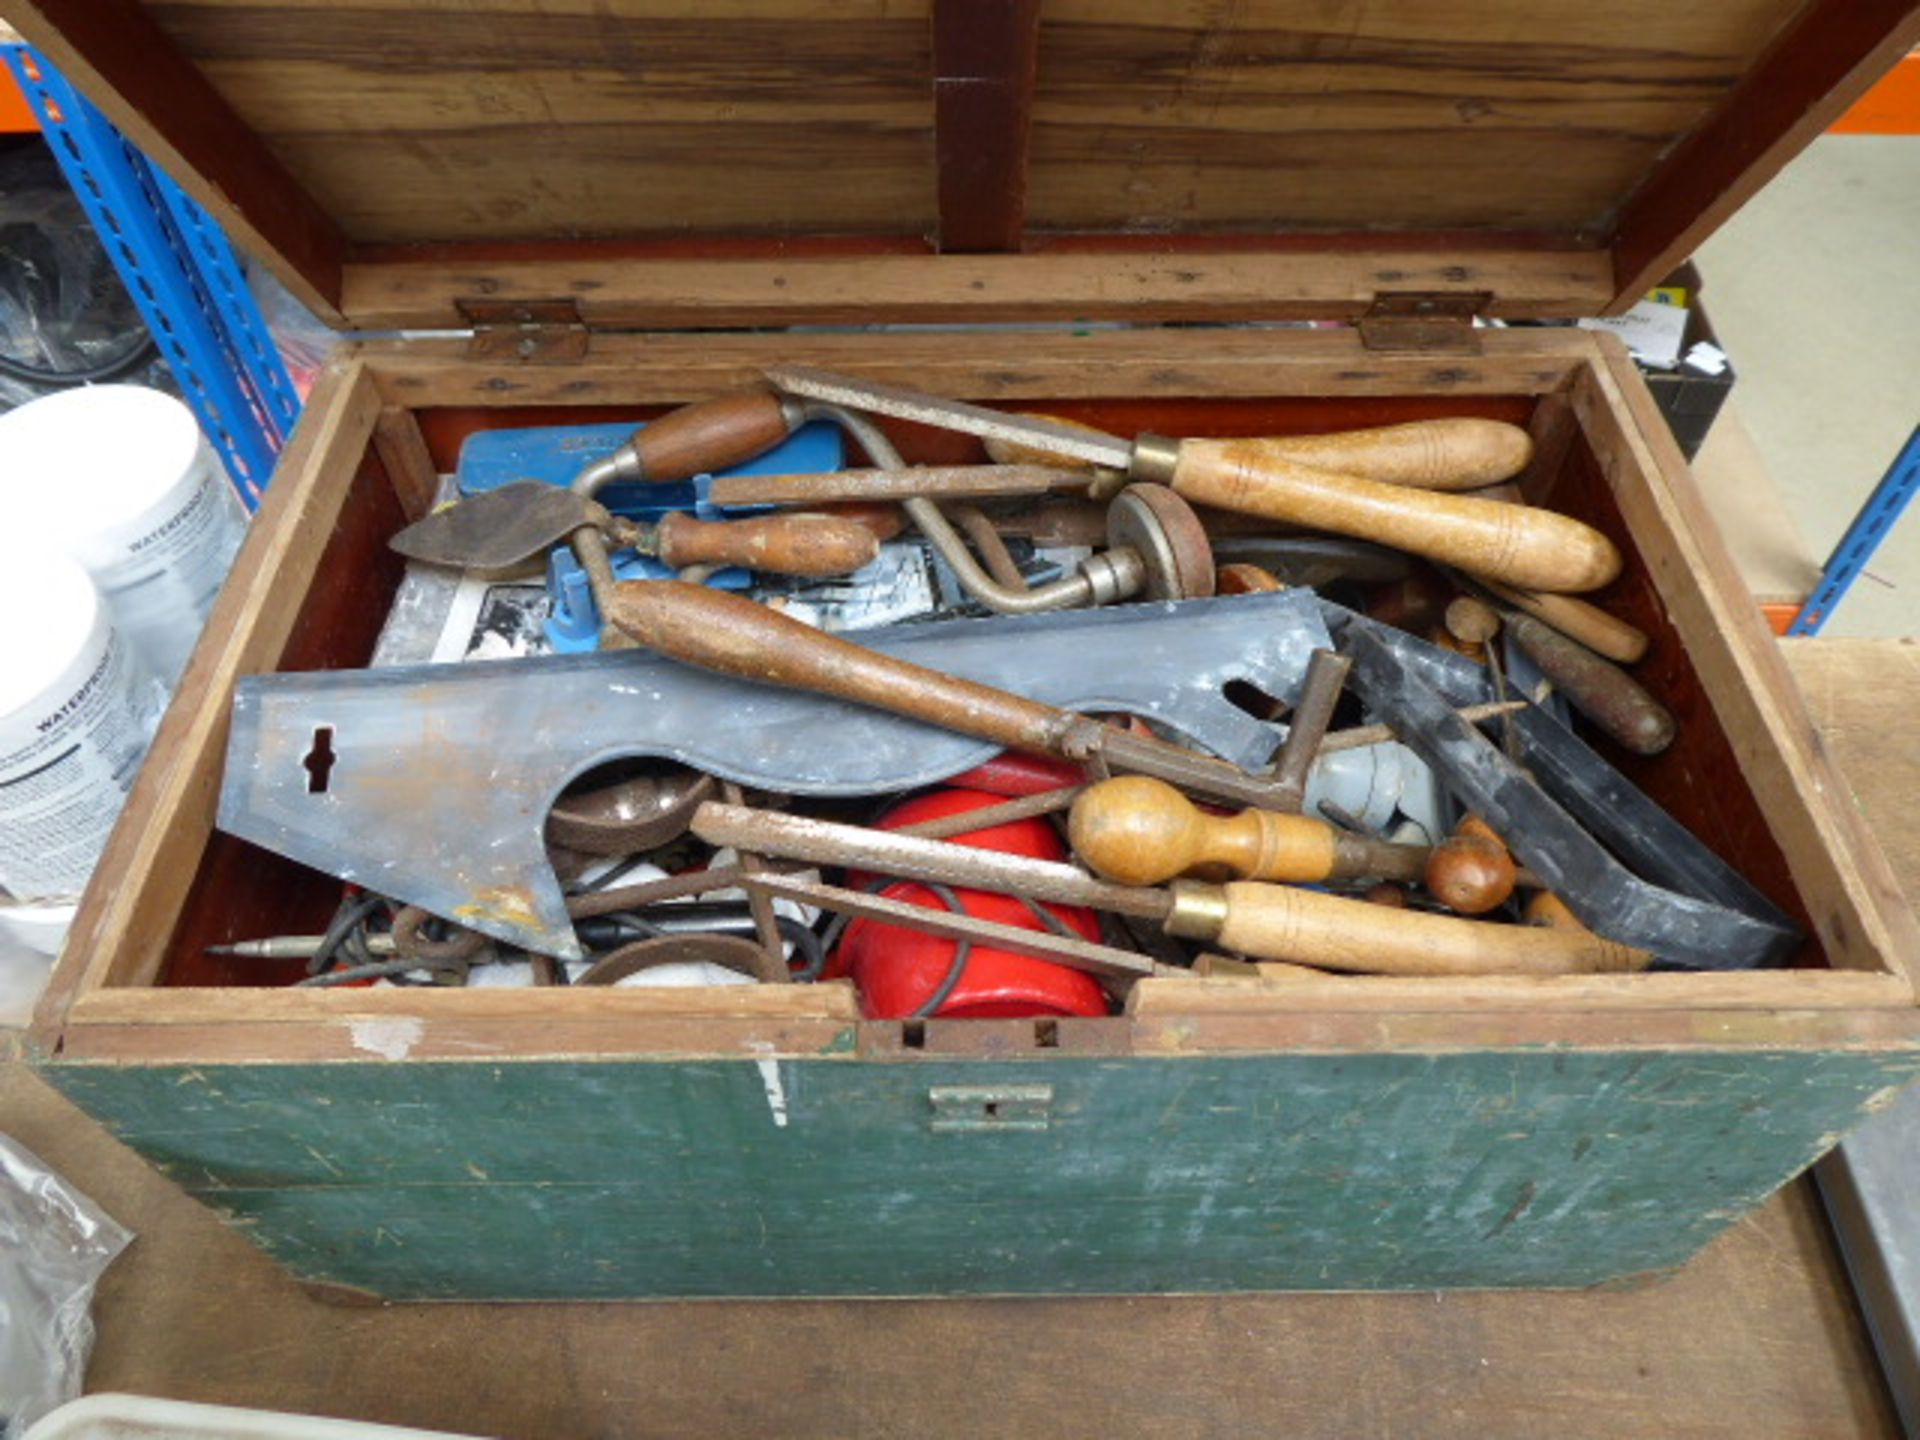 Lot 4319 - Wooden toolbox containing large quantity of vintage tools inc, chisels, hammers, soldering irons,